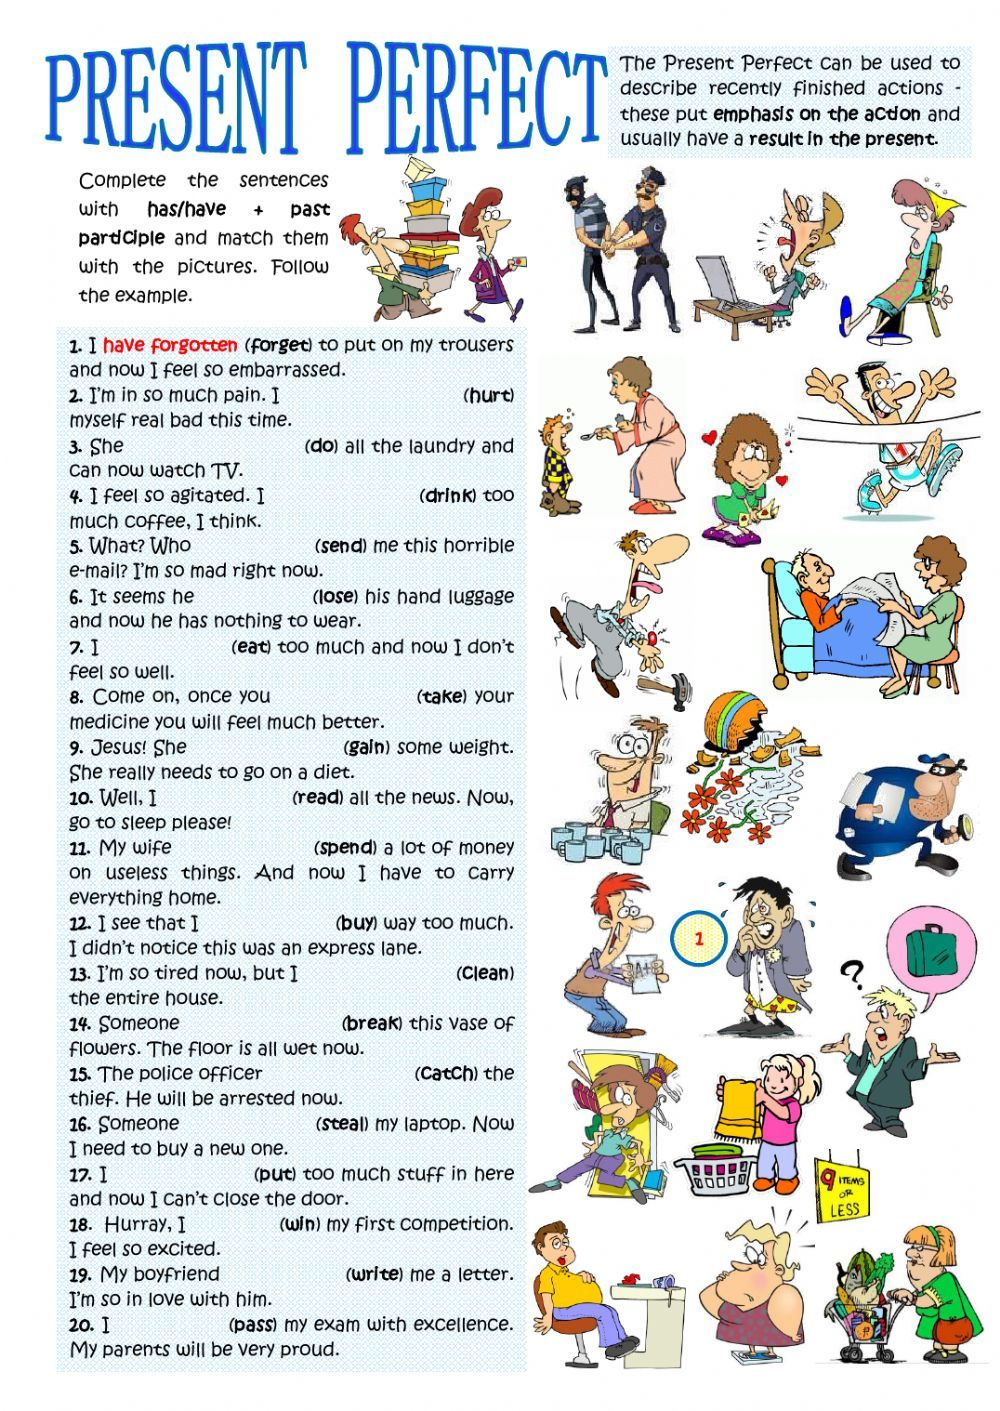 Present perfect interactive and downloadable worksheet